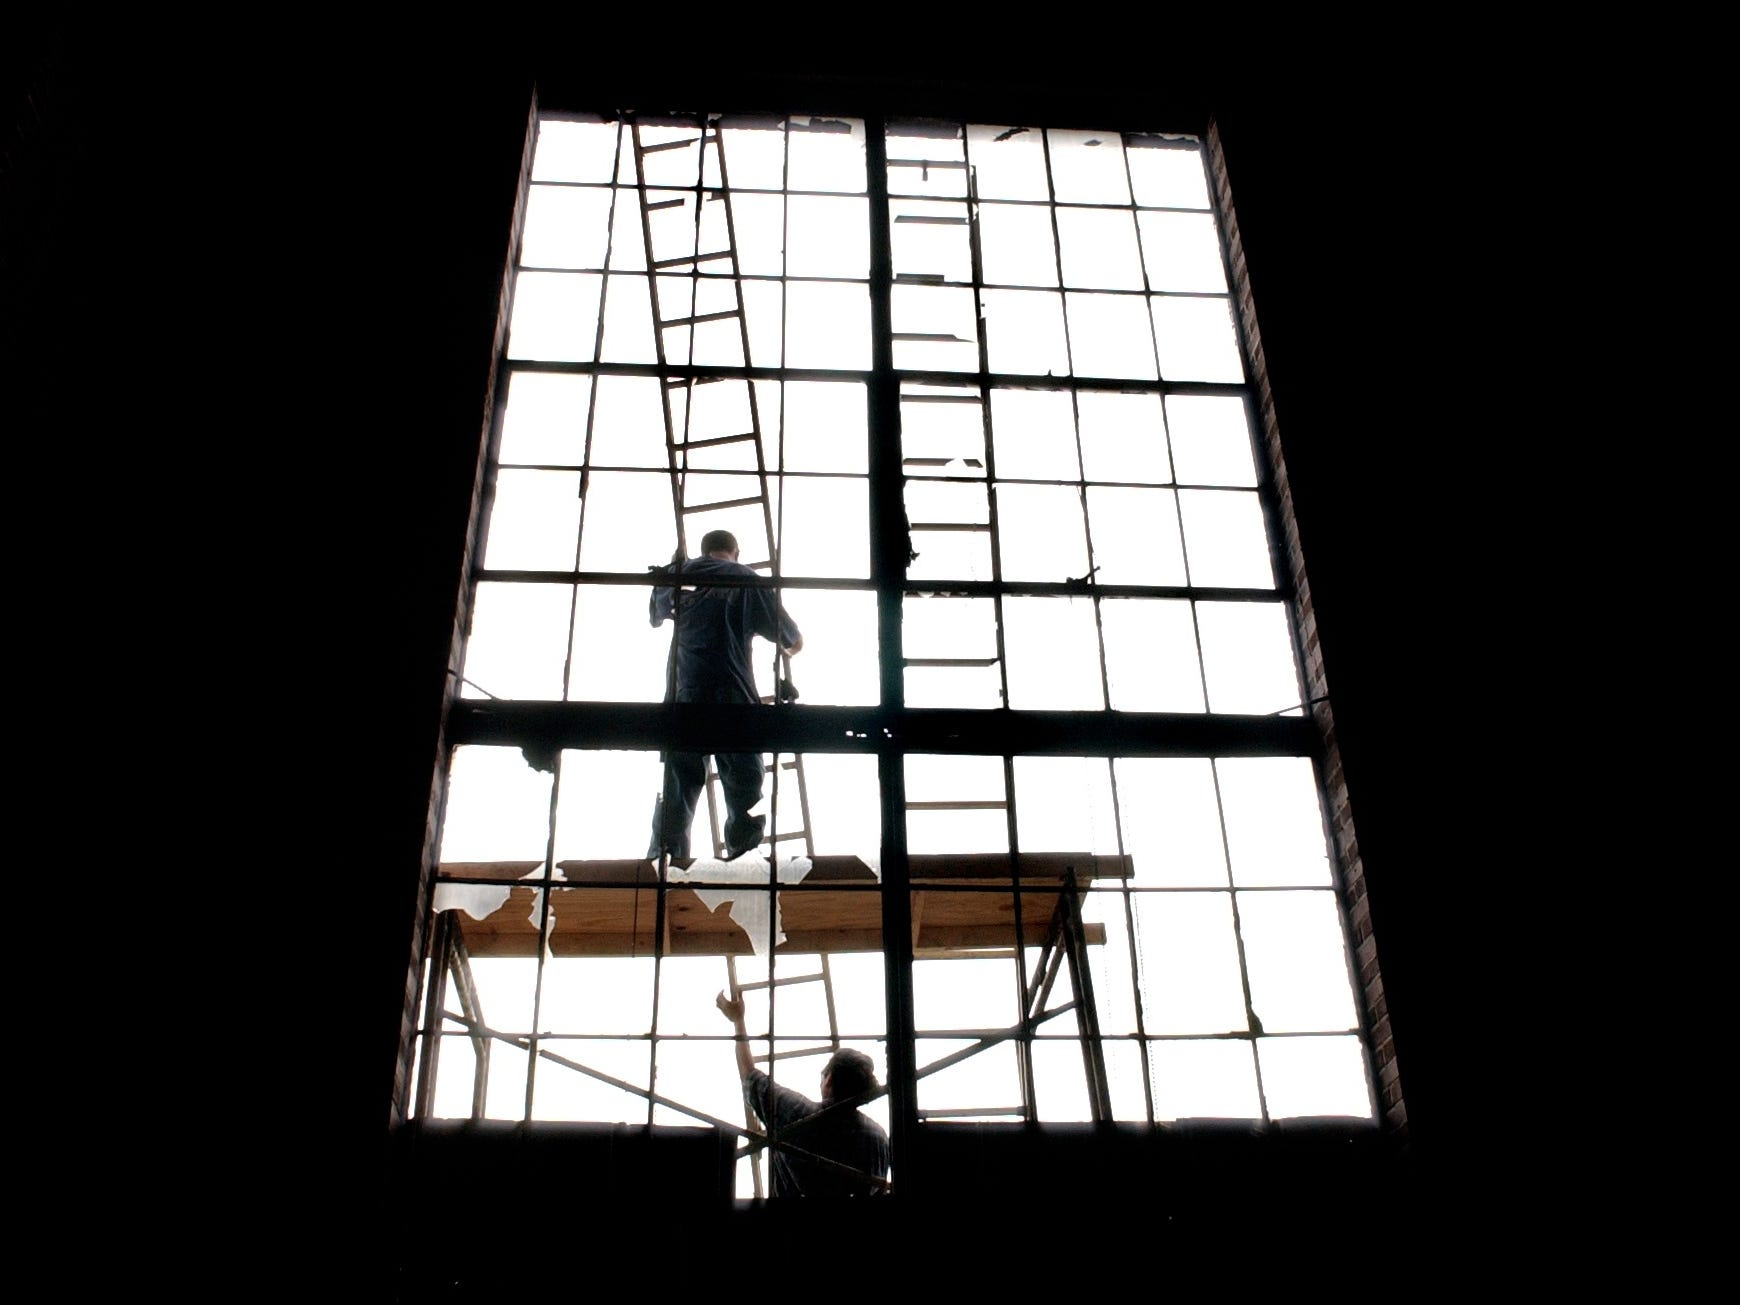 April 3, 2002 - Pete Kollas (top) and Jose Garcia, of BCI General Contractors in Virginia, begin to cover the windows of the Old Diesel Power Plant building. The crew was hired to pressure wash the building at 19th Place bordering the railroad tracks. Developers Phil Barth and Charles Block had plans to turn the electric plant and the old water plant into space for restaurants and retail businesses at the time.